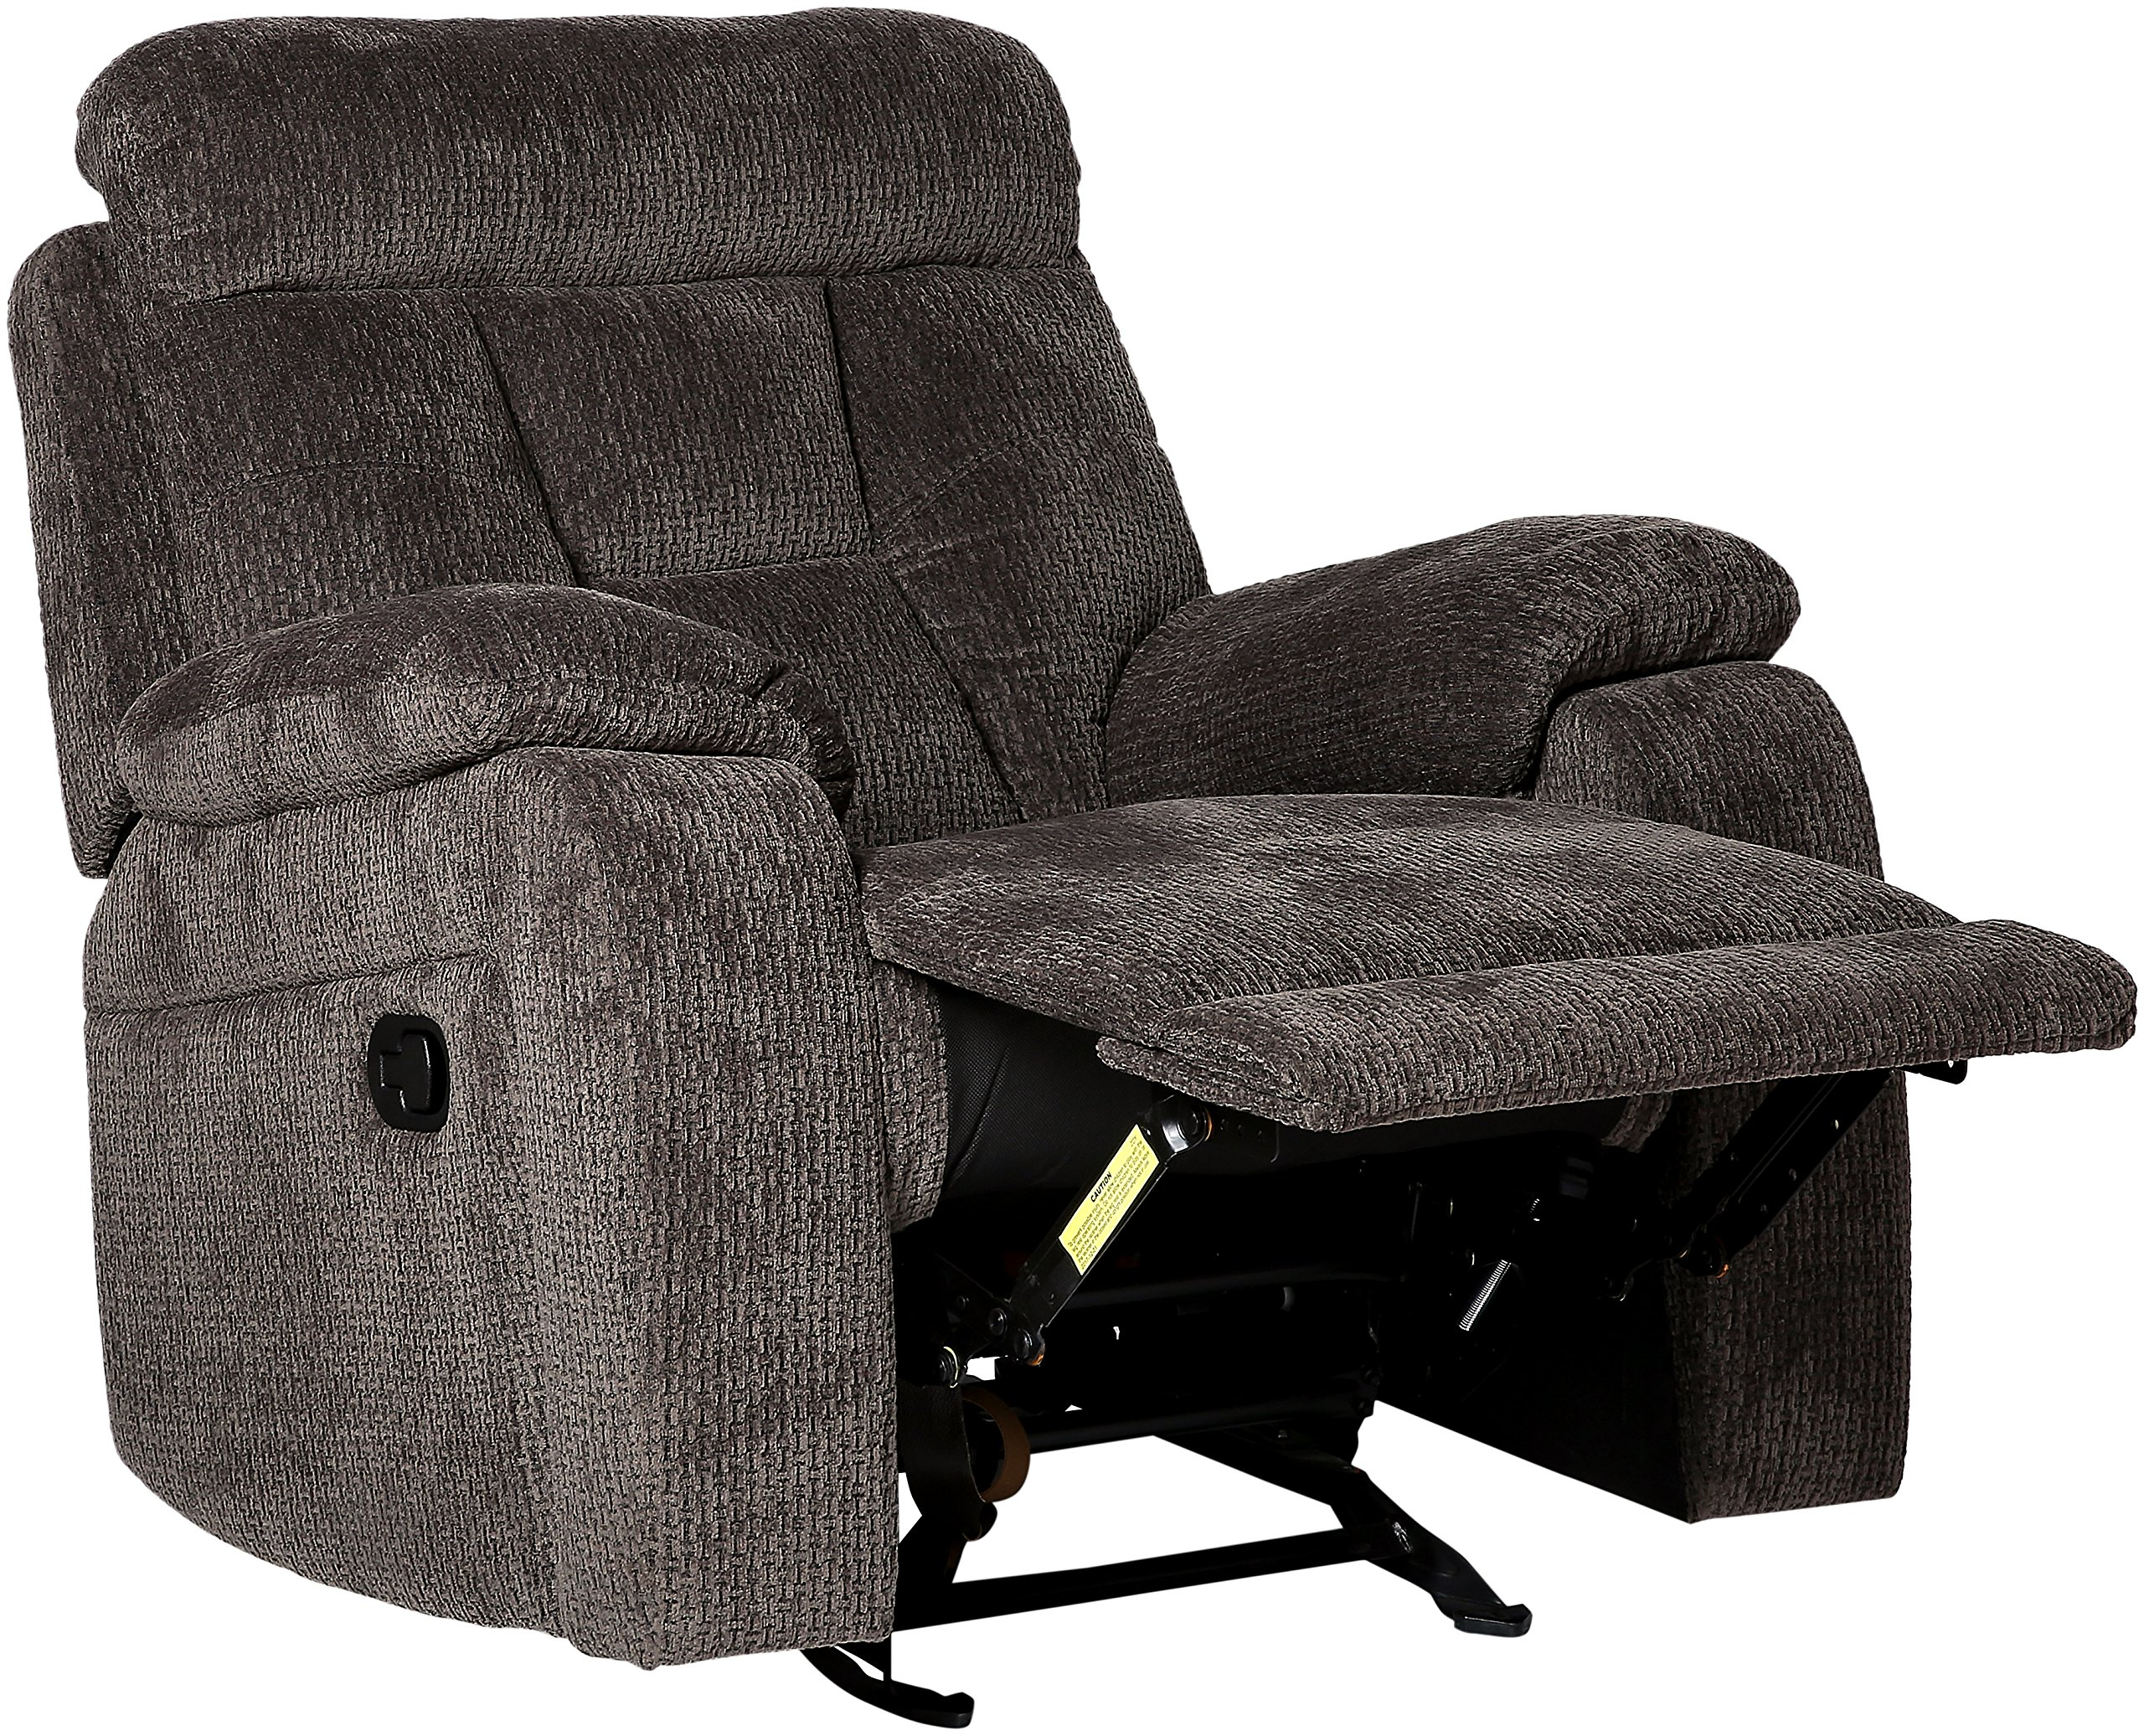 Homelegance Reclining Chair with Console